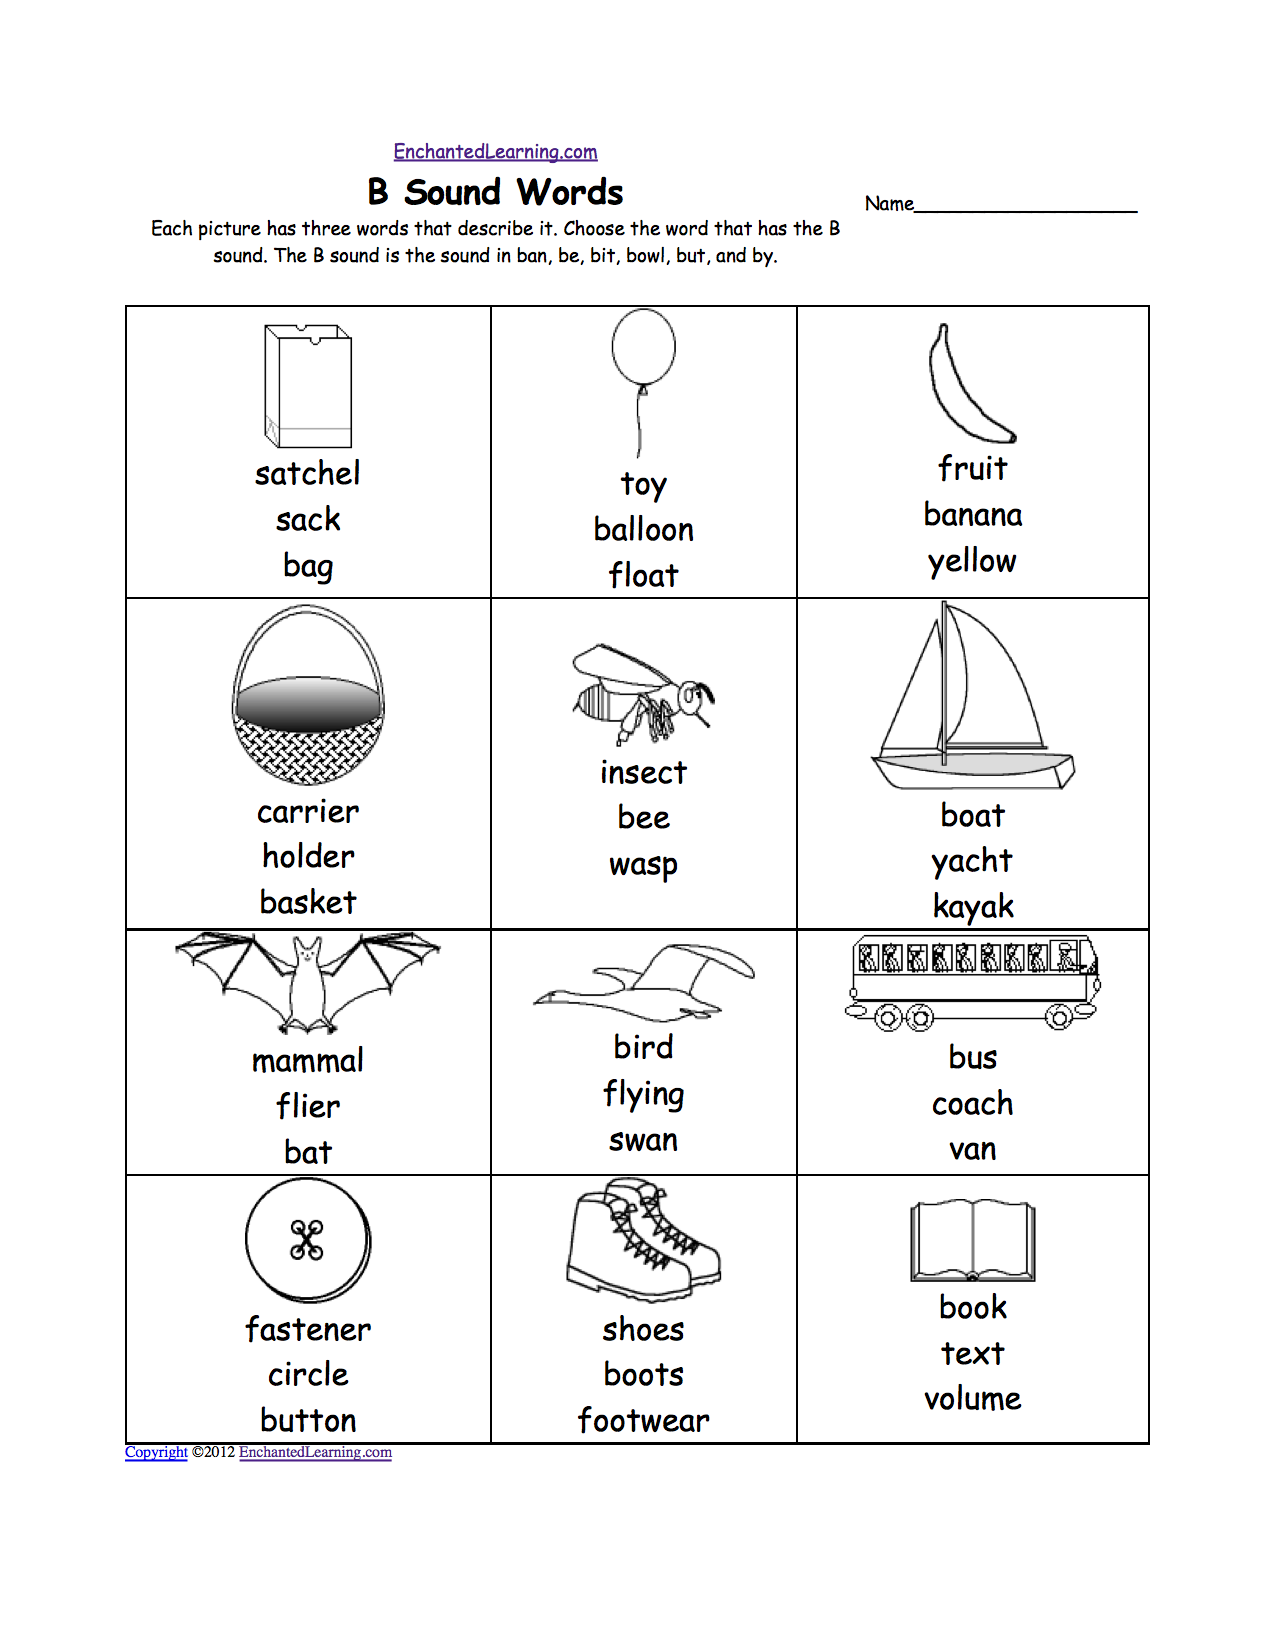 Proatmealus  Remarkable Phonics Worksheets Multiple Choice Worksheets To Print  With Entrancing Quotbquot Sound Phonics Worksheet Multiple Choice Each Picture Has Three Words That Describe It Choose The Word That Has A Quotbquot Sound The Quotbquot Sound Is The Sound  With Charming Nonfiction Worksheets Also Th Digraph Worksheets First Grade In Addition Mole To Mole Calculations Worksheet And Comparative Advantage Worksheet As Well As Subject Pronoun Worksheets Additionally Patterns Worksheet From Enchantedlearningcom With Proatmealus  Entrancing Phonics Worksheets Multiple Choice Worksheets To Print  With Charming Quotbquot Sound Phonics Worksheet Multiple Choice Each Picture Has Three Words That Describe It Choose The Word That Has A Quotbquot Sound The Quotbquot Sound Is The Sound  And Remarkable Nonfiction Worksheets Also Th Digraph Worksheets First Grade In Addition Mole To Mole Calculations Worksheet From Enchantedlearningcom